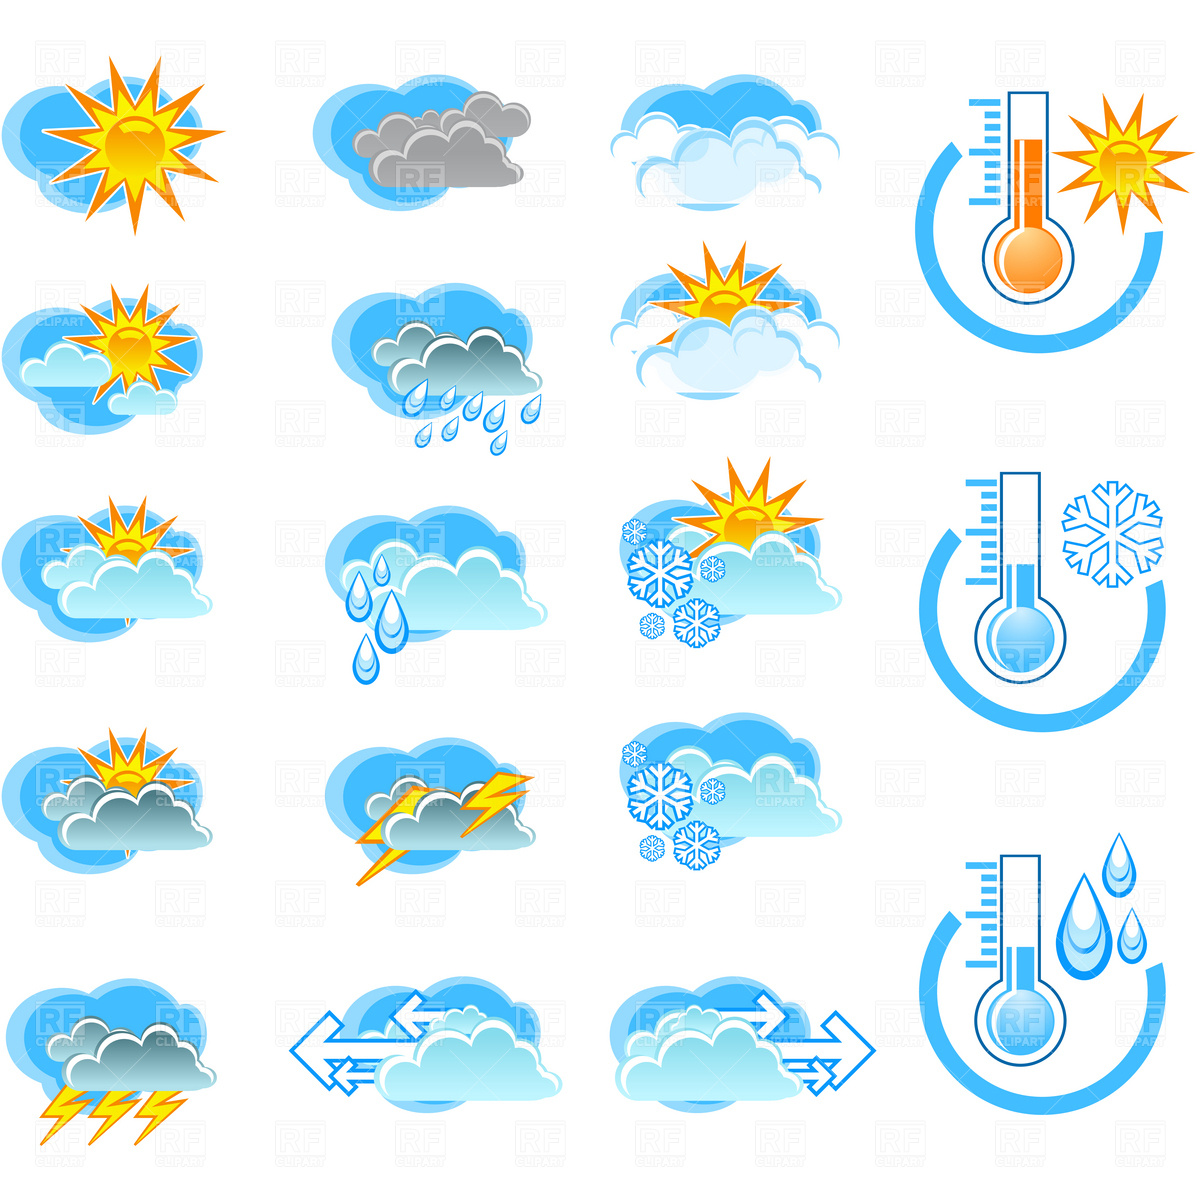 Weather Forecast Clipart.